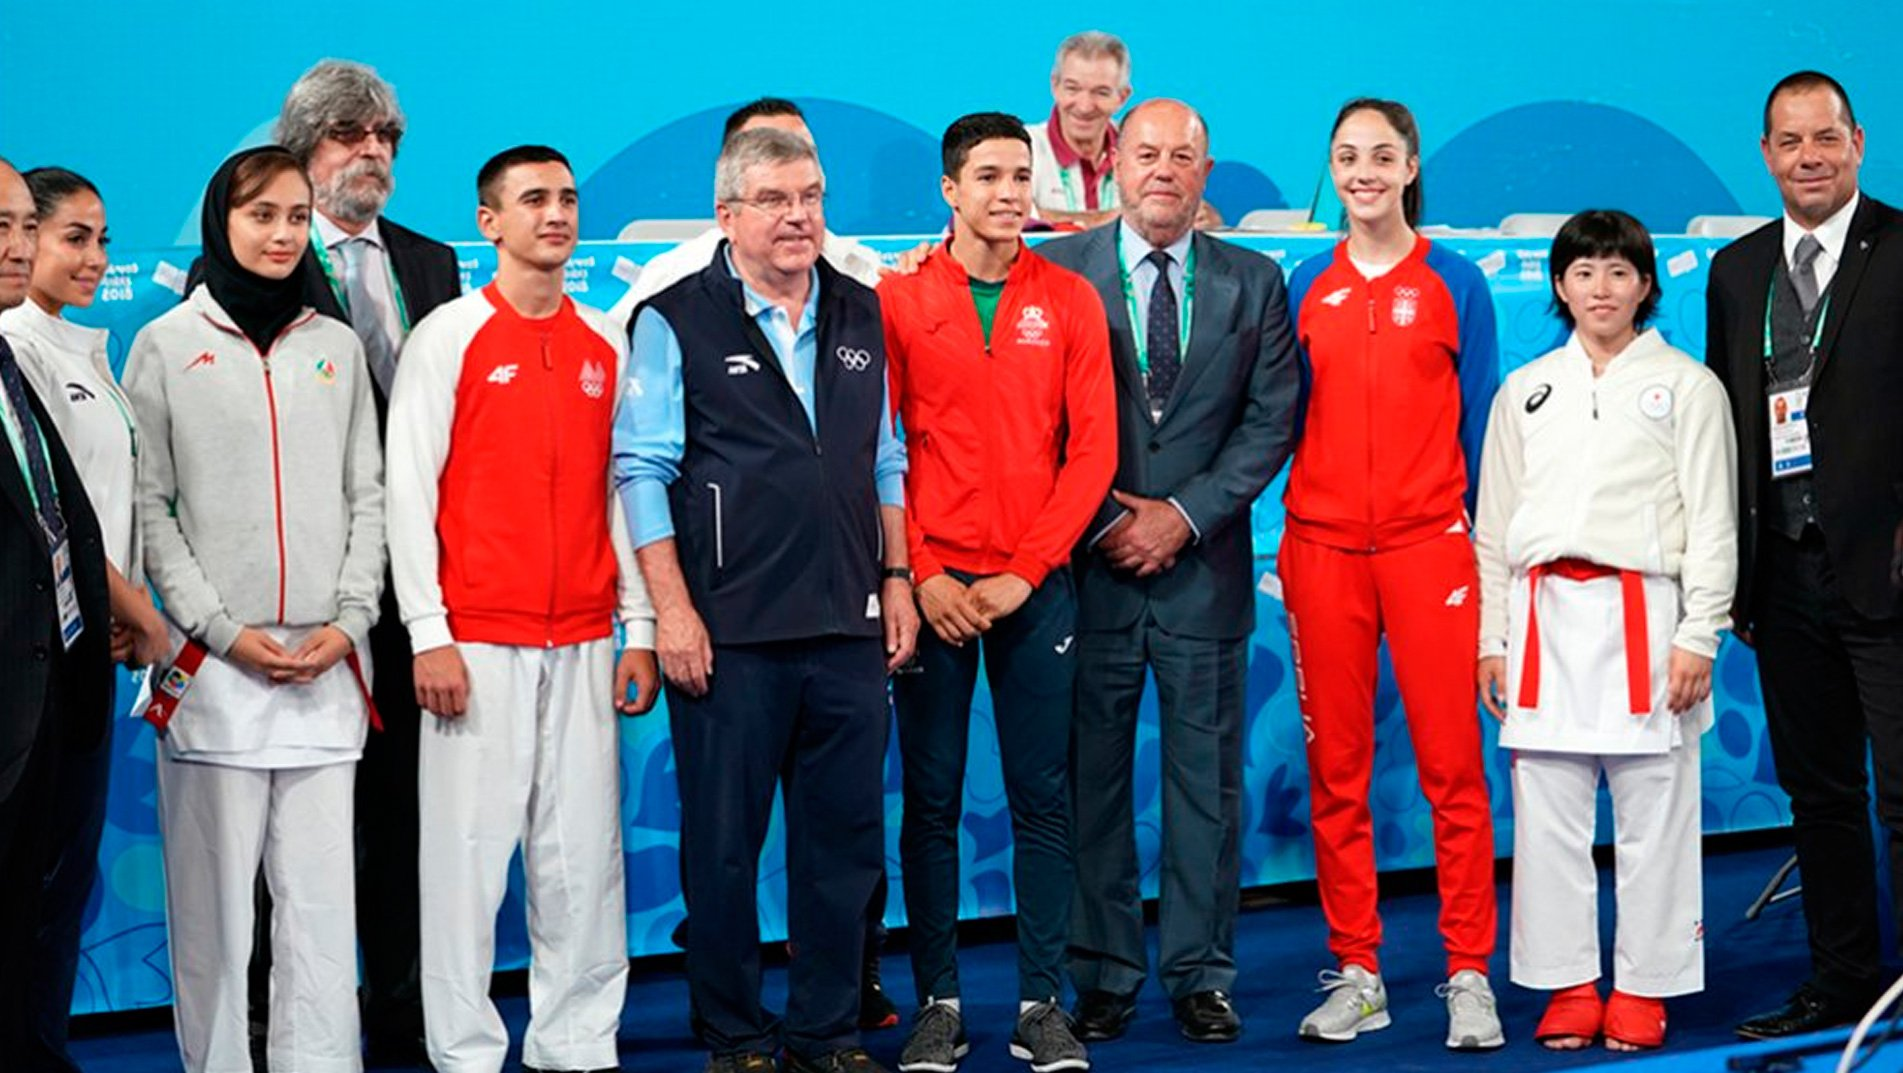 IOC President Thomas Bach attends Karate competition at Youth Olympic Games